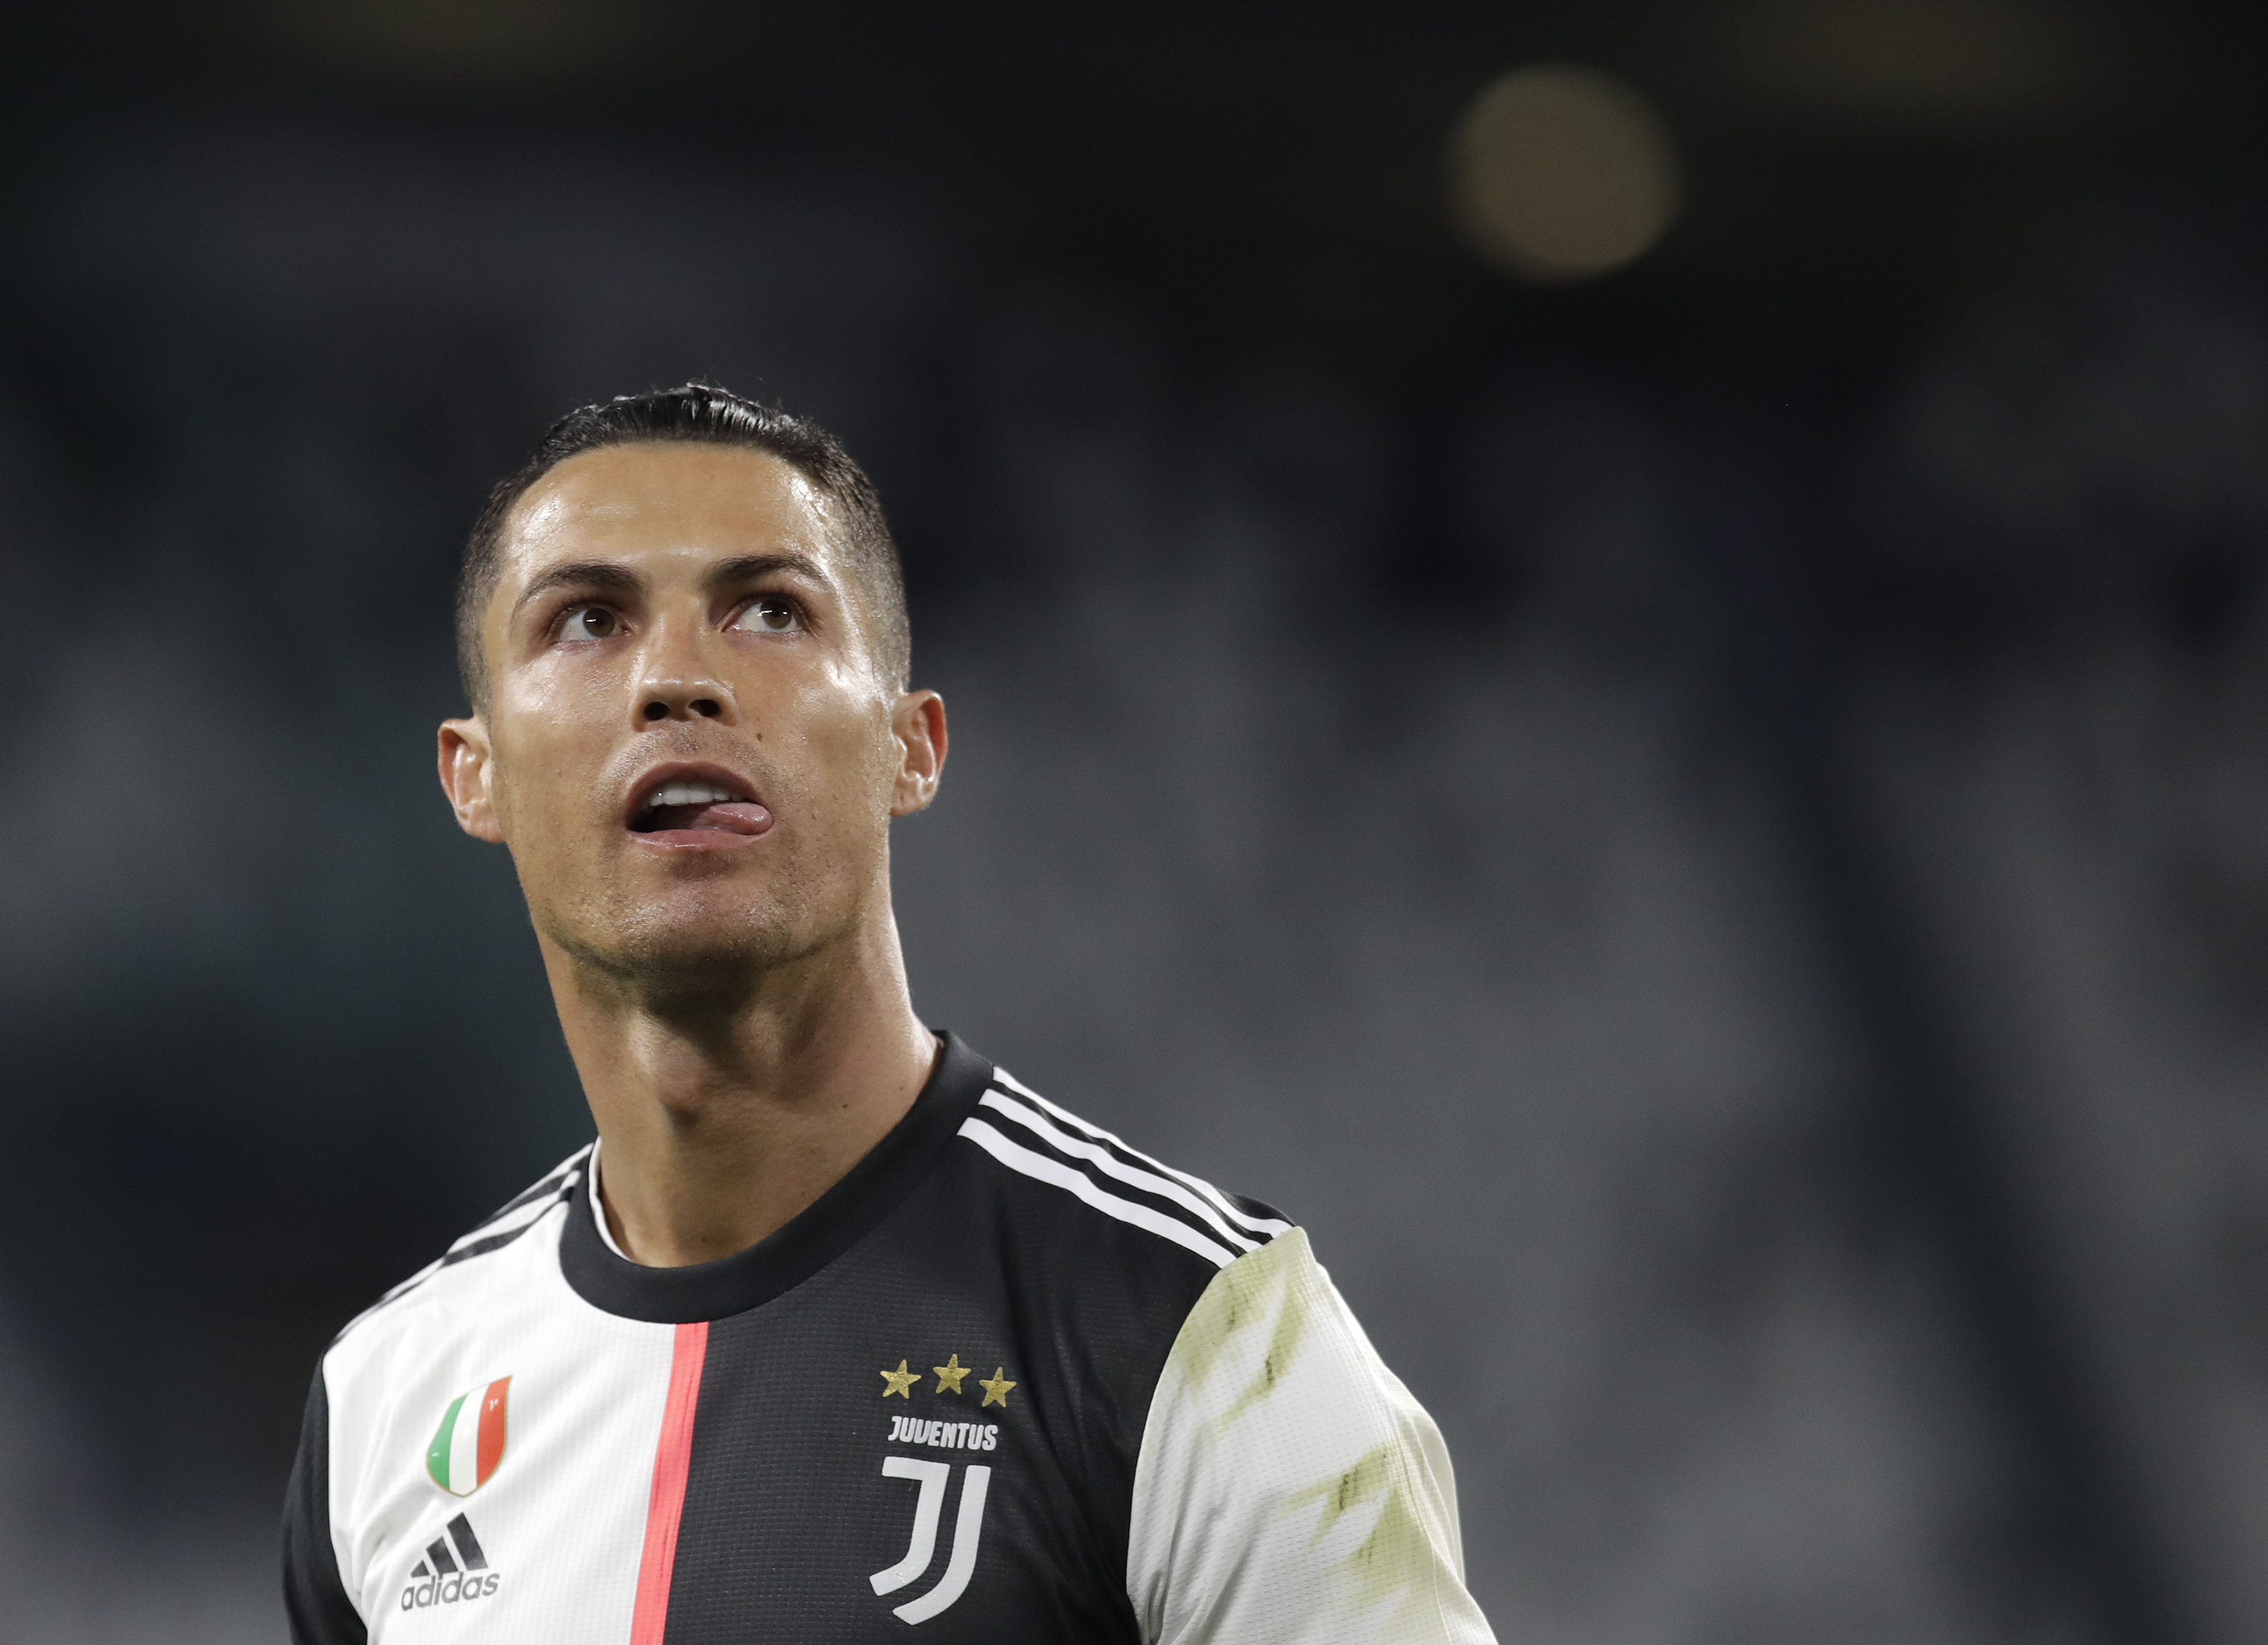 Juventus Vs Napoli Live Stream Start Time Tv Channel How To Watch Coppa Italia Final 2020 Wed June 17 Masslive Com